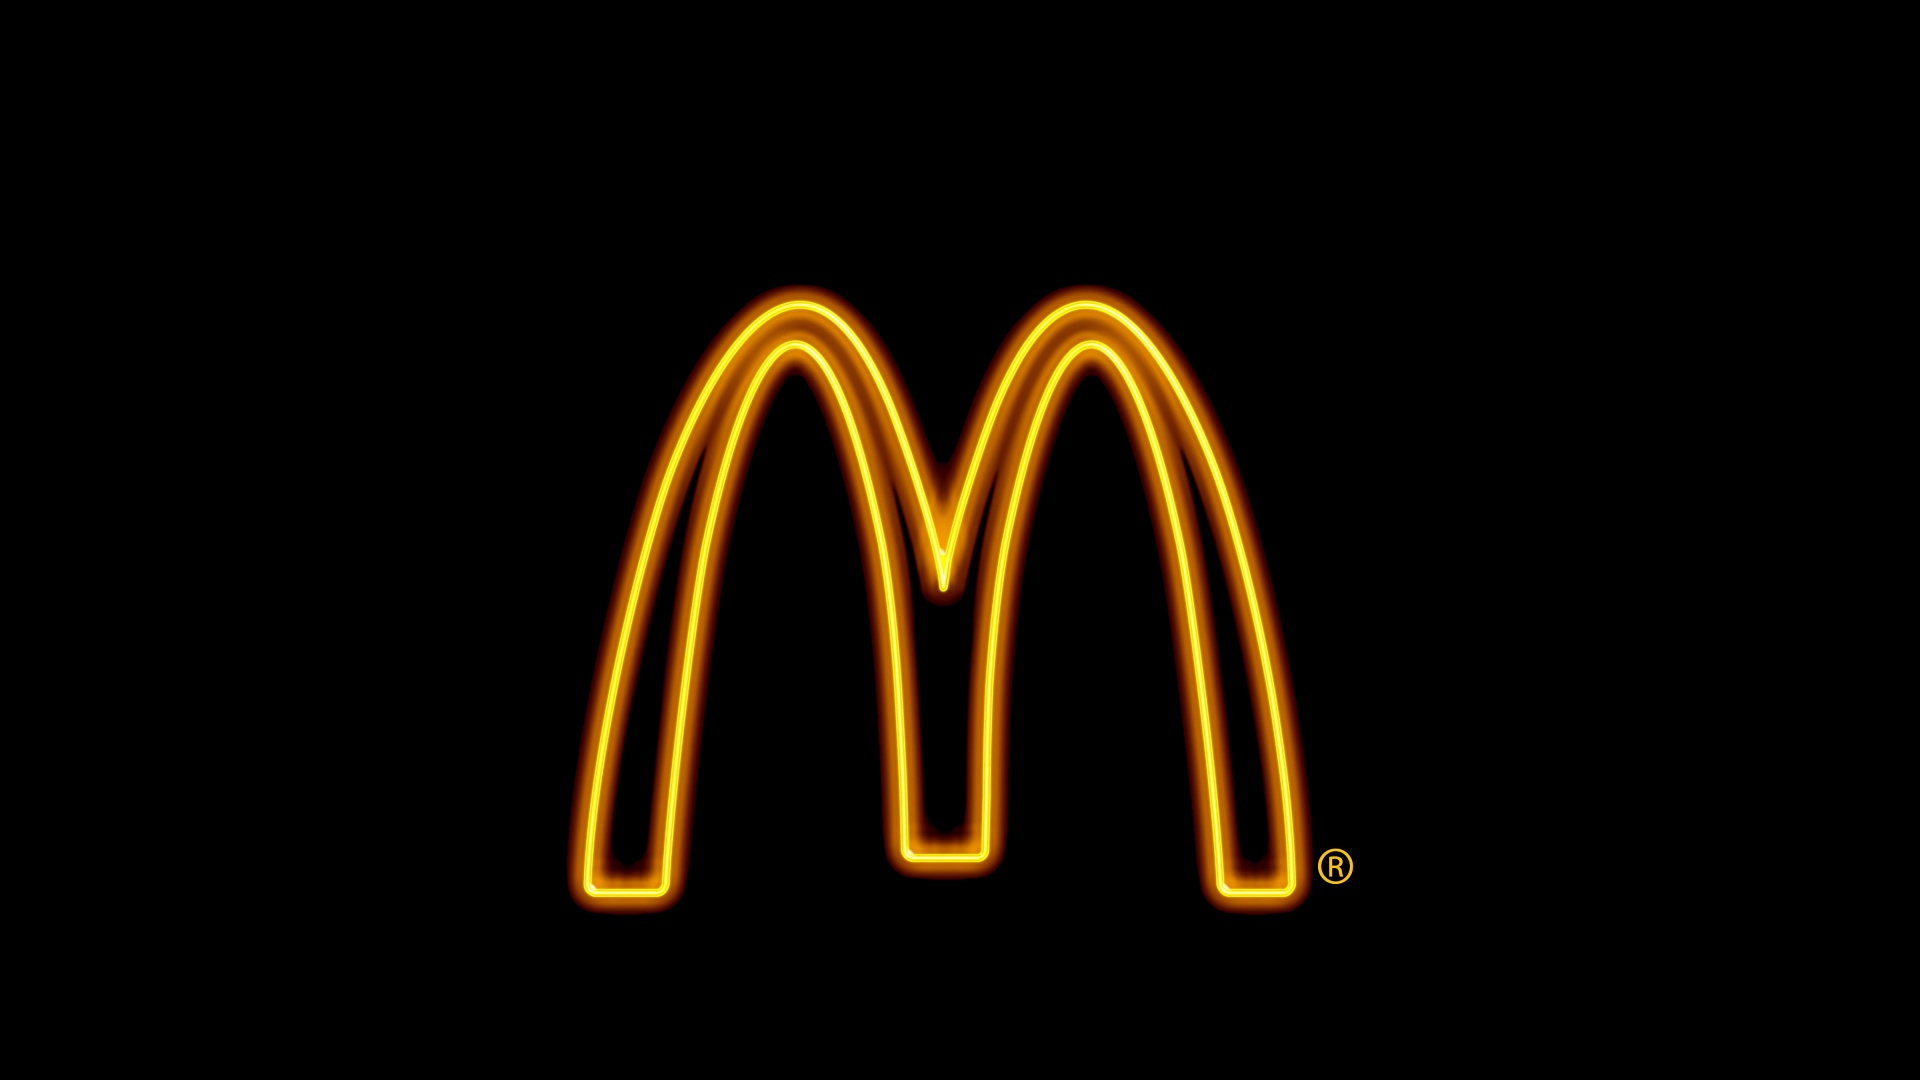 Mcdonalds-Logo-High-Definition-Wallpapers-1080p